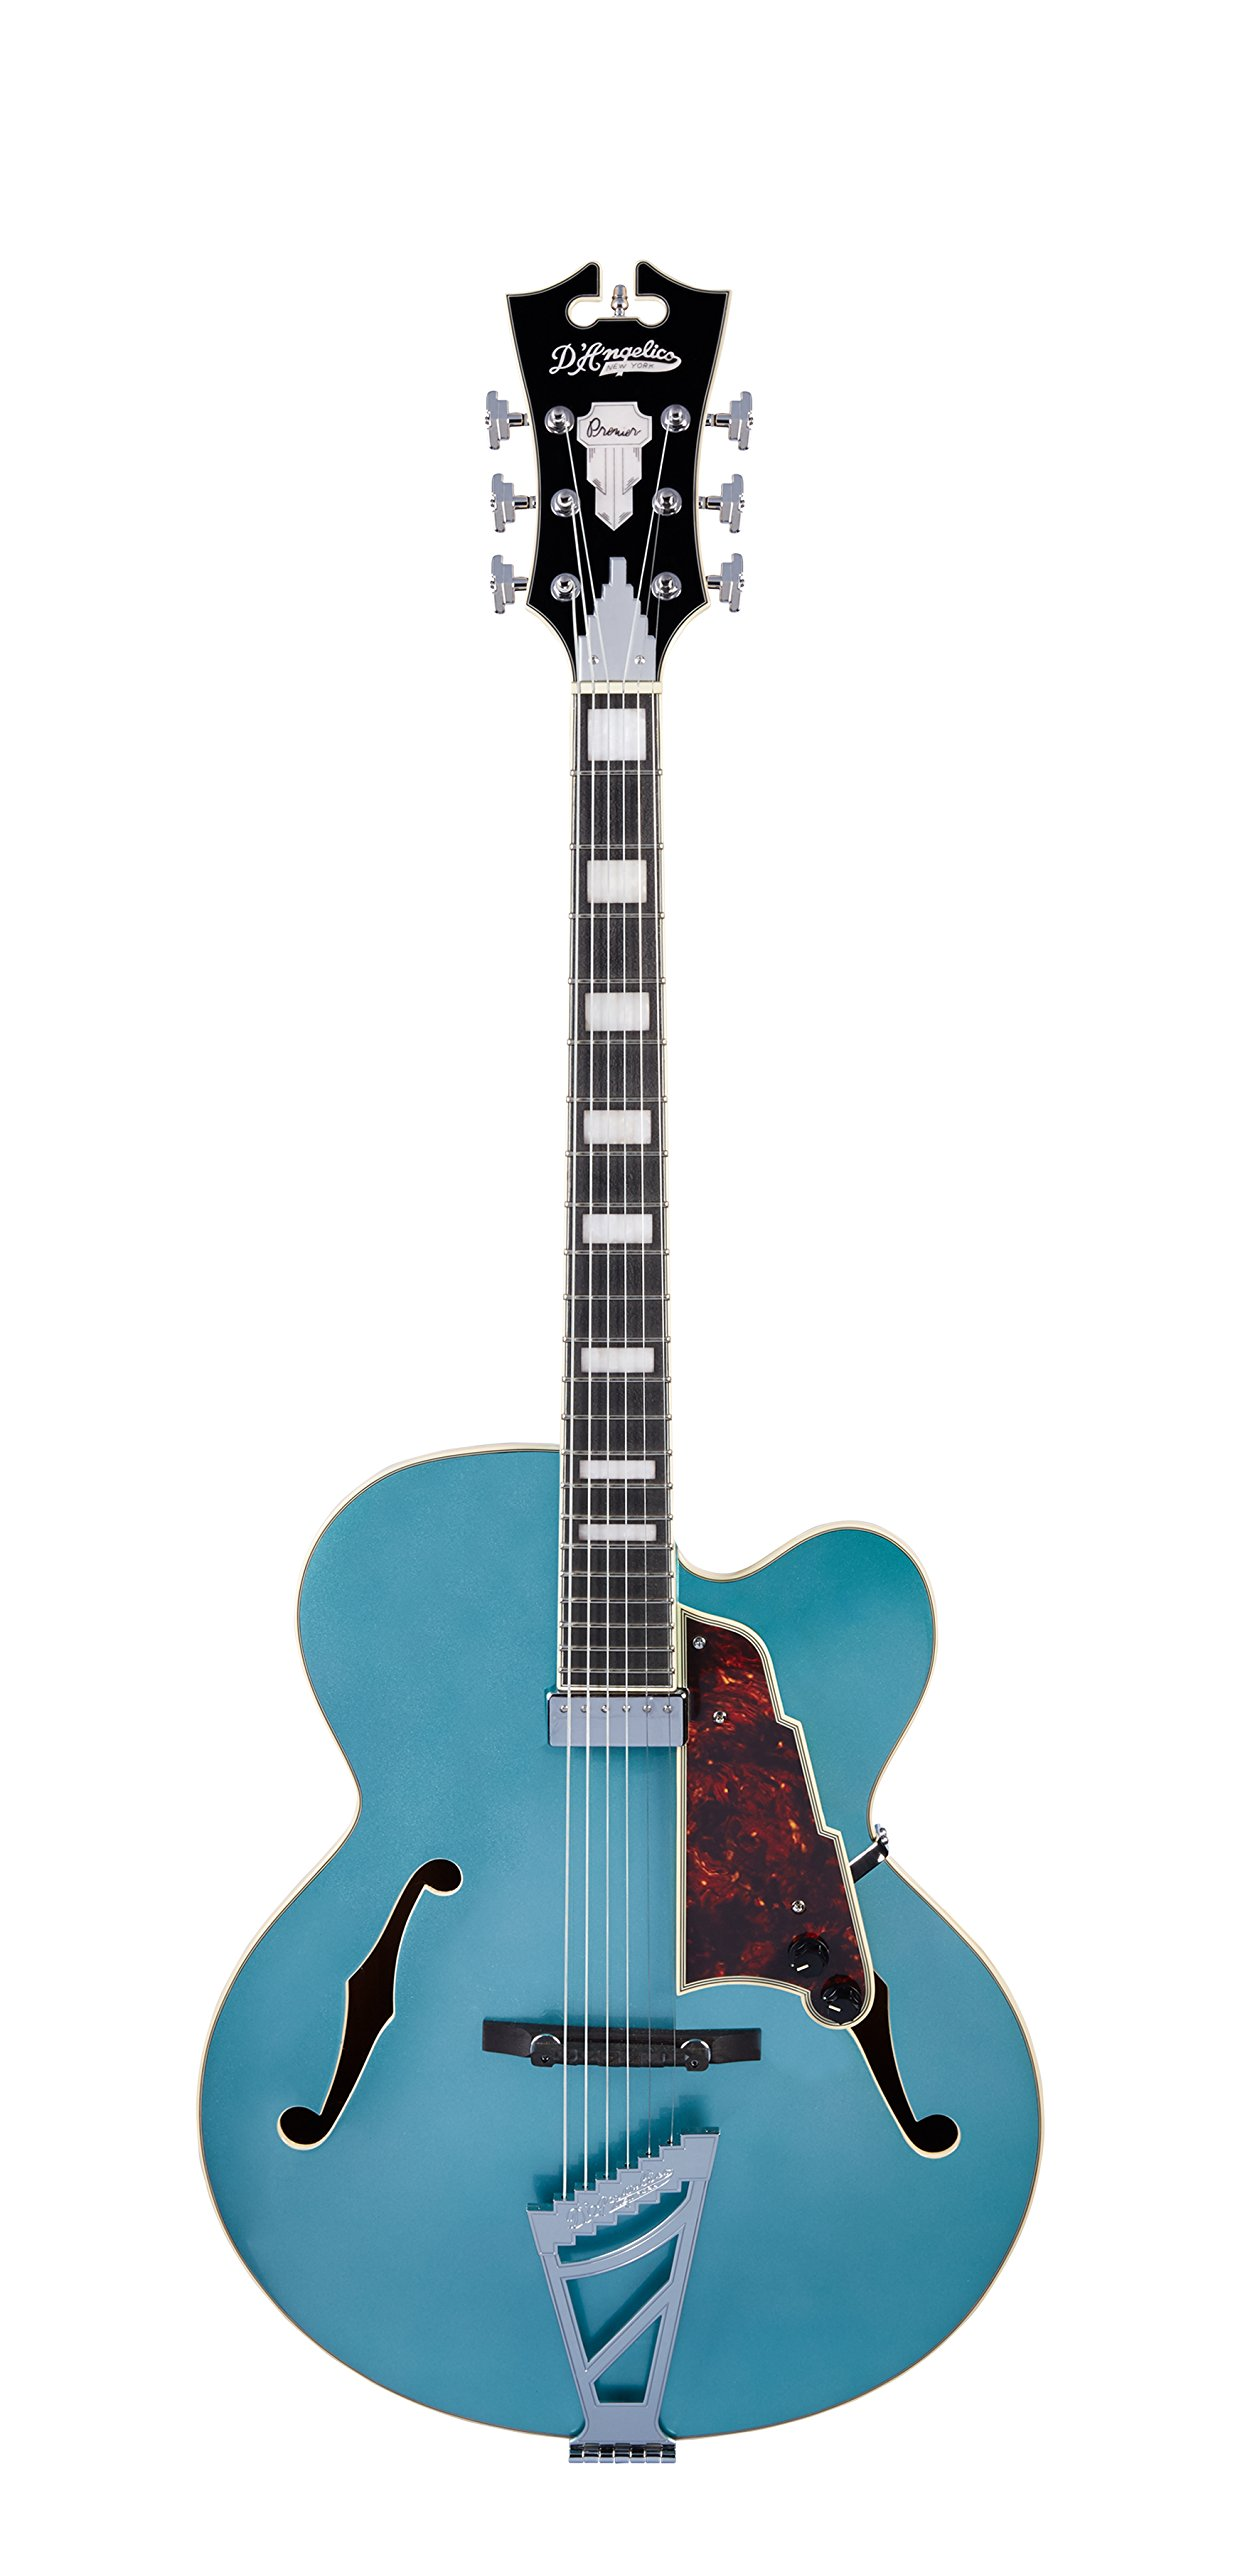 Cheap D Angelico Premier EXL-1 Hollow-Body Electric Guitar w/ Stairstep Tailpiece - Ocean Turquoise Black Friday & Cyber Monday 2019